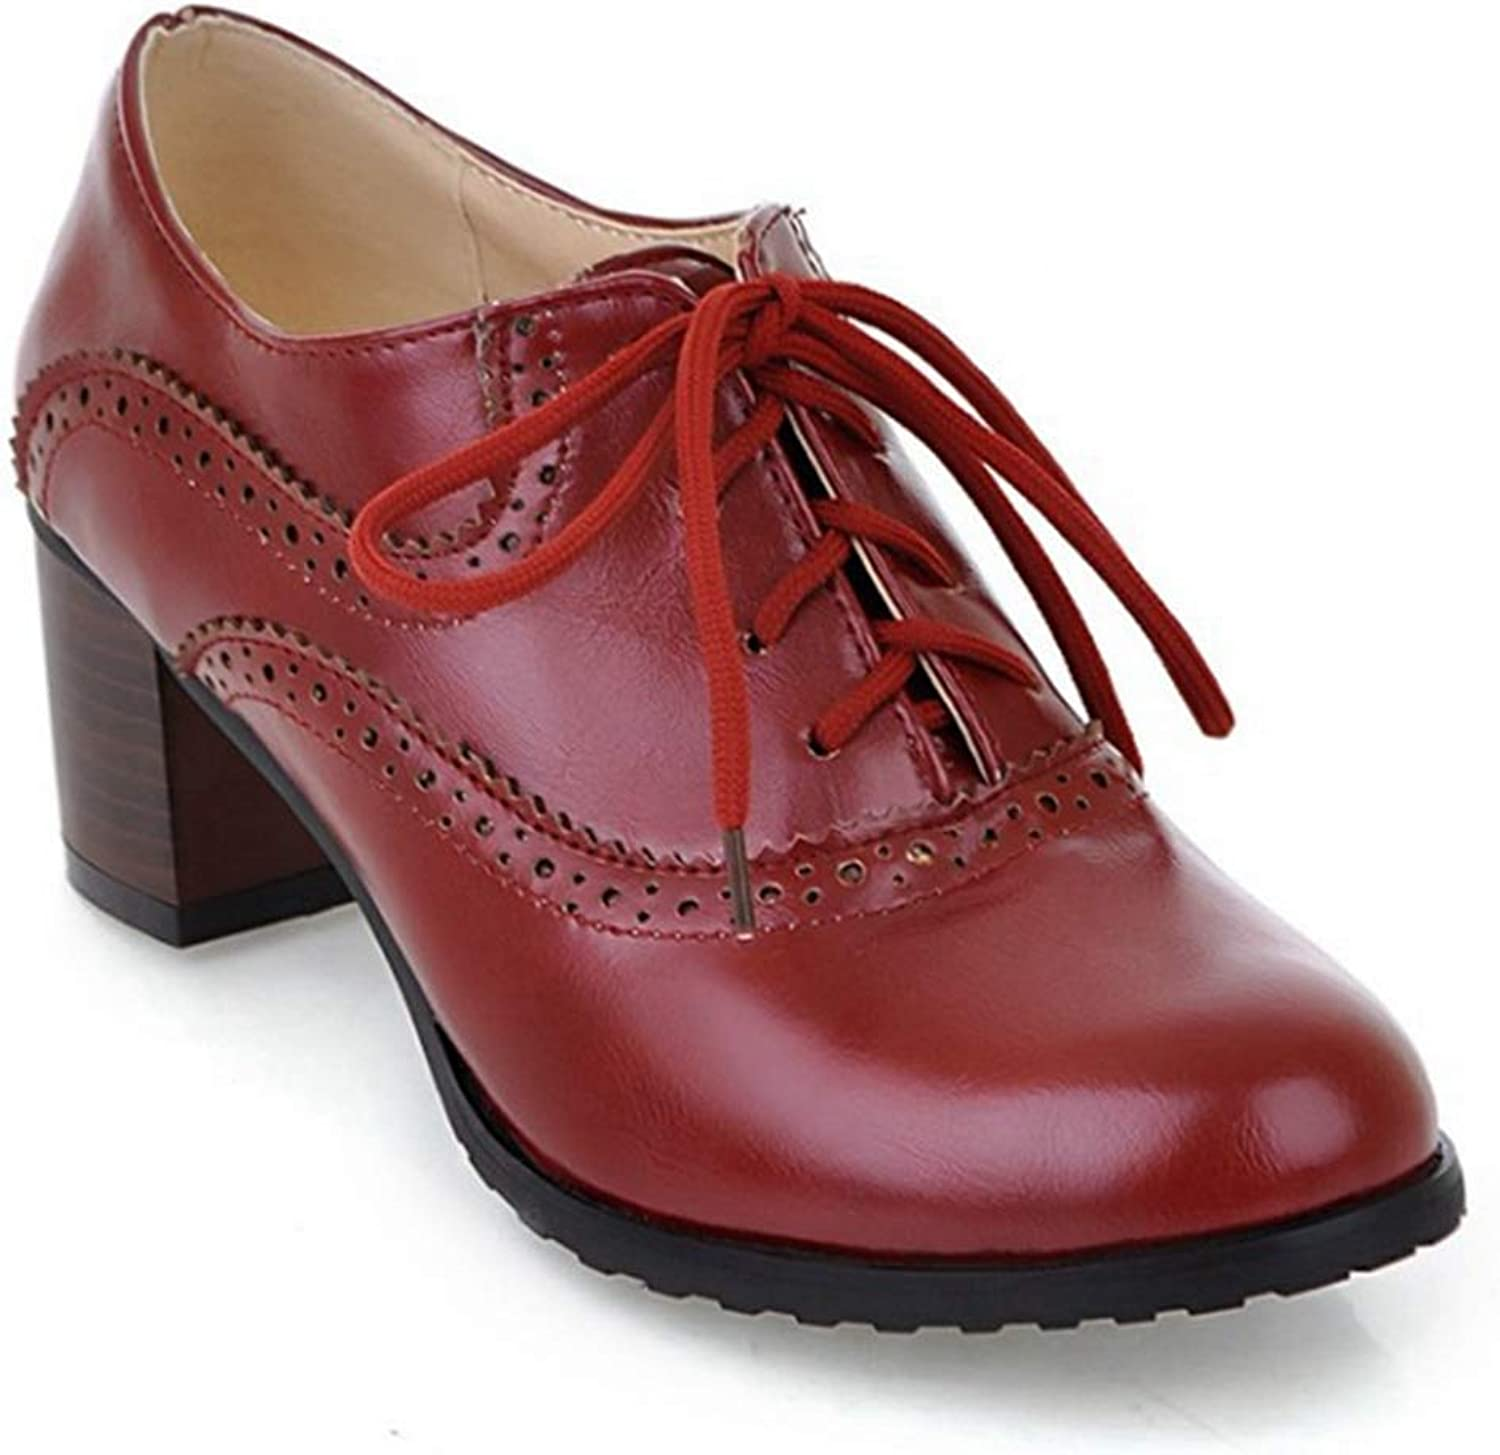 Women's Block Heel Oxfords Lace-up Pointd Toe Dress Pumps Loafers Vintage Handmade Platform shoes